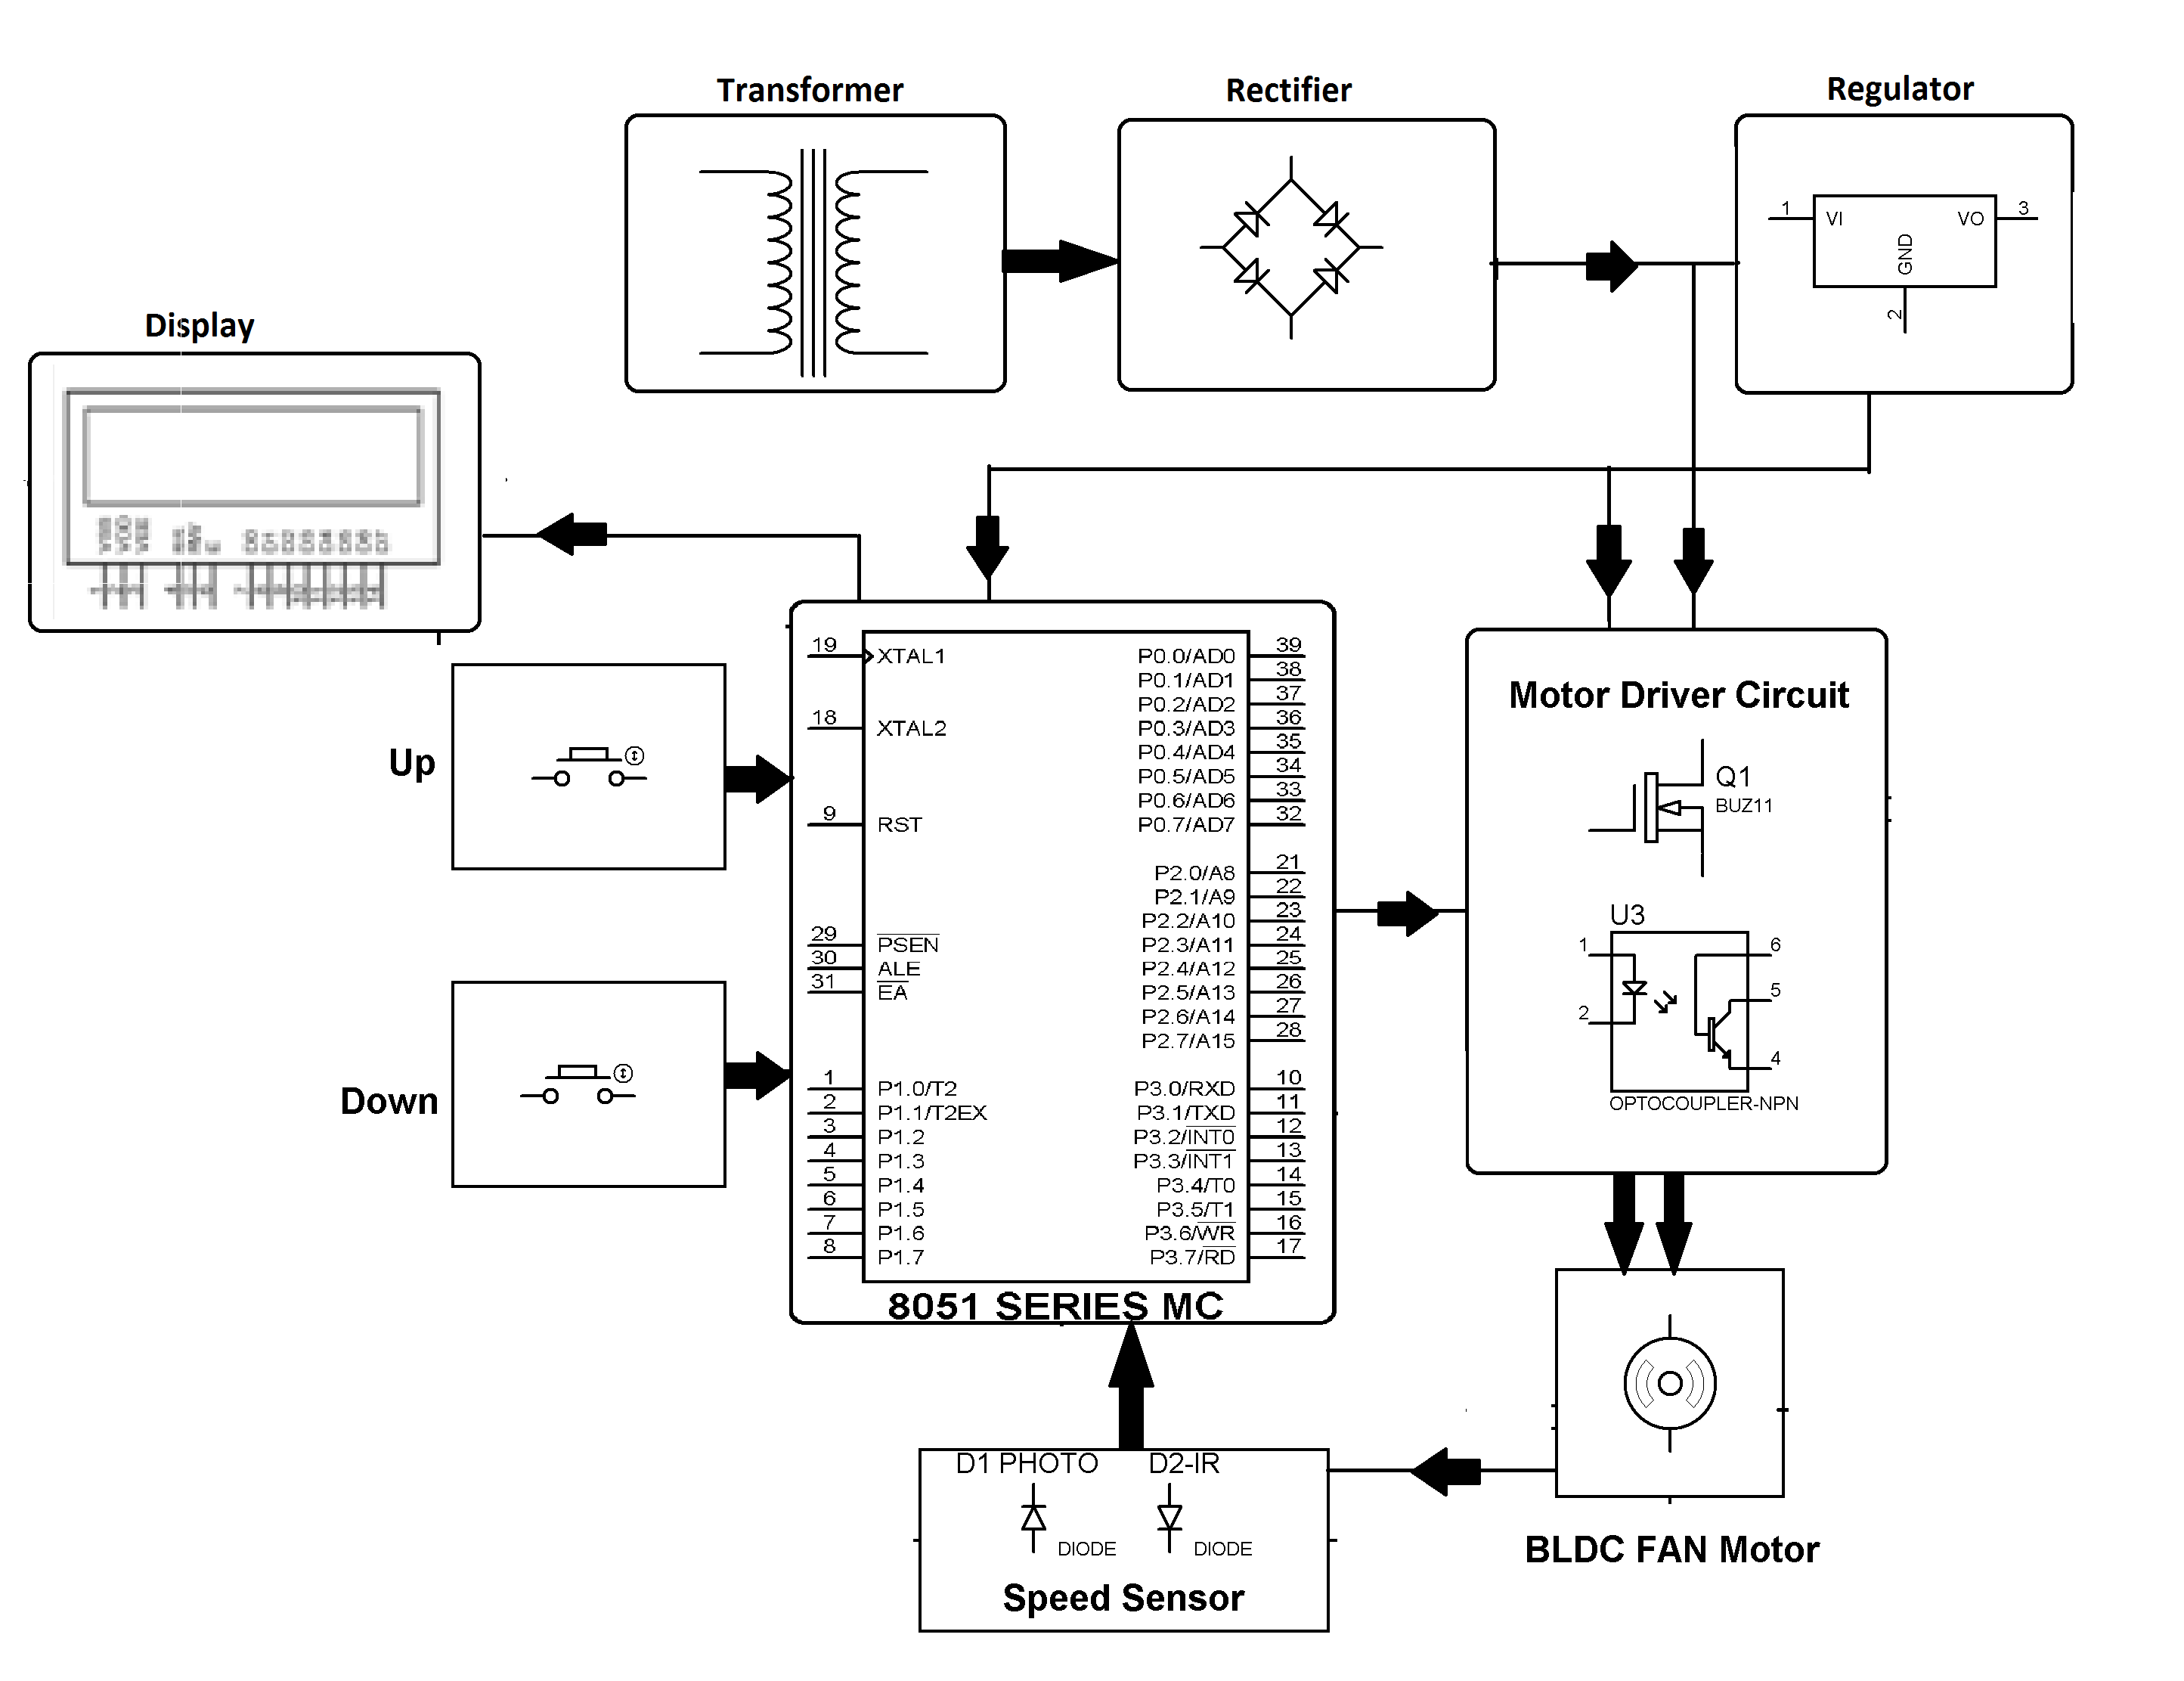 fuzzy logic based bldc motor speed control